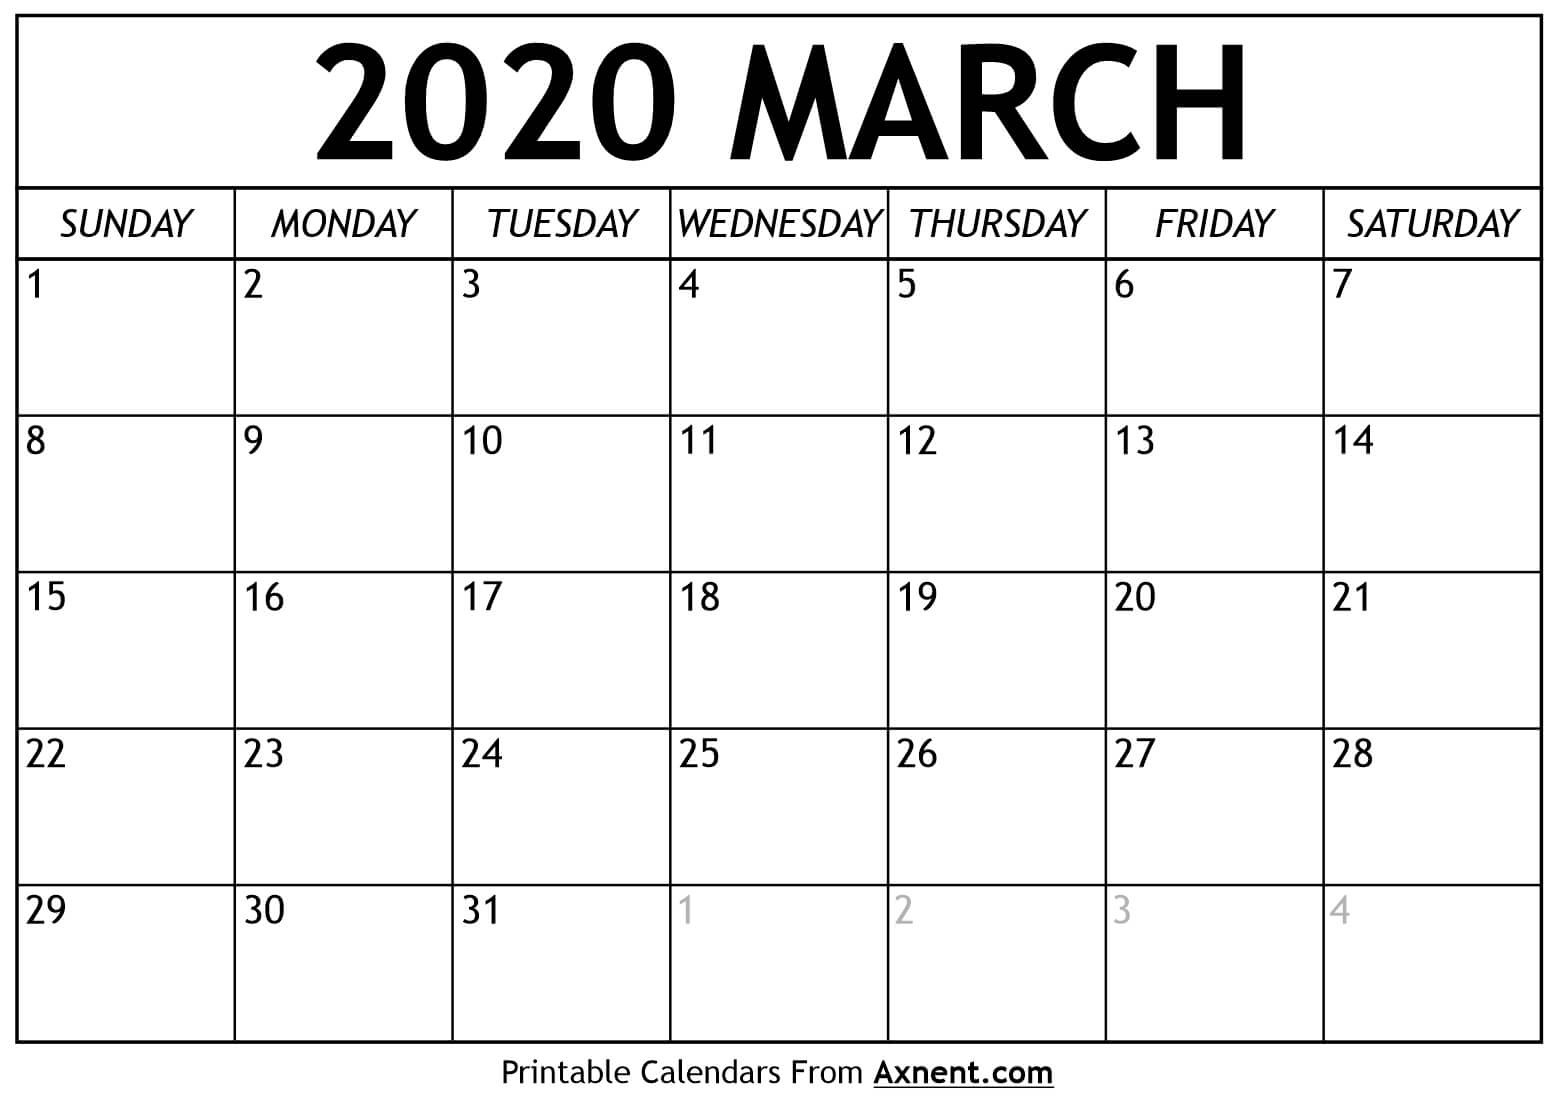 Printable March 2020 Calendar Template - Time Management  Full Size Printable Calendar 2020